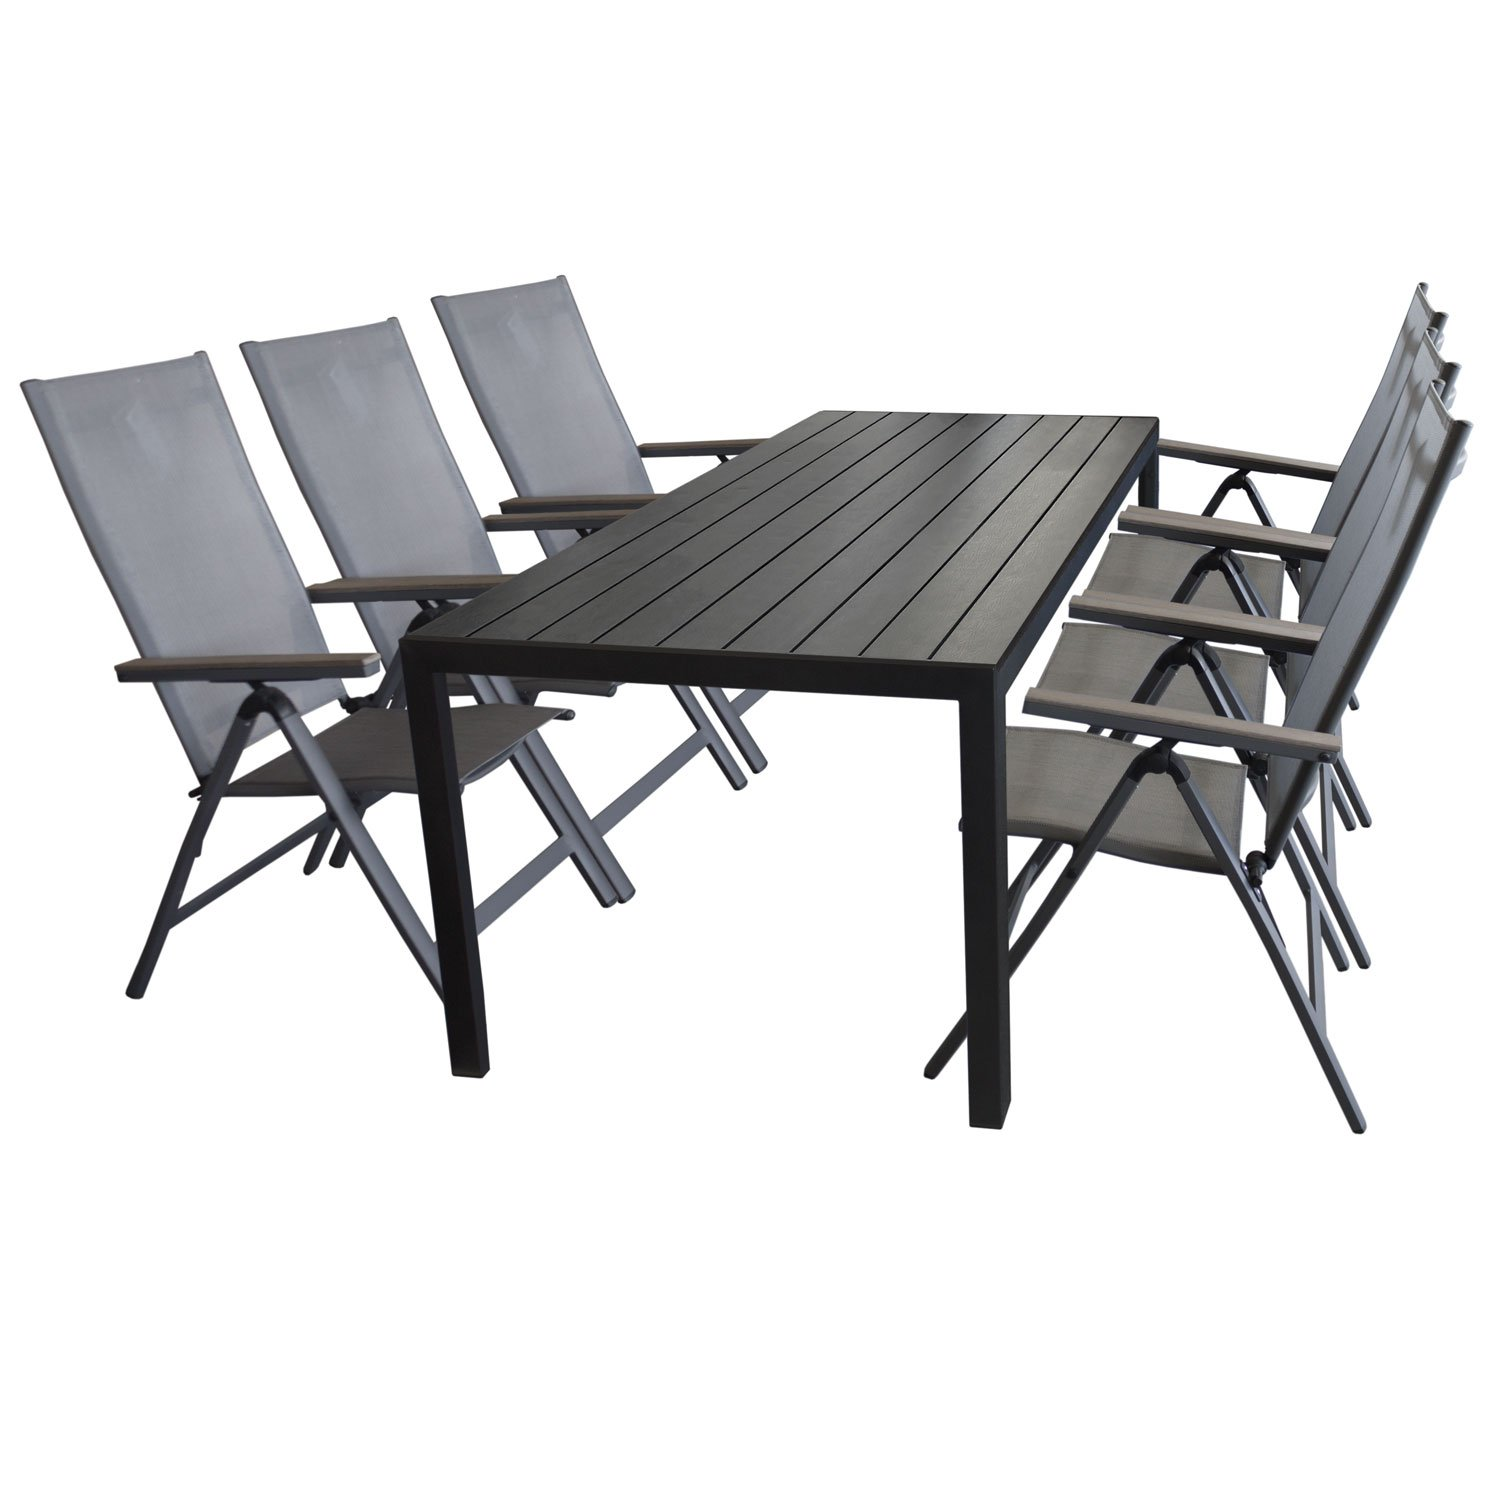 gartengarnitur gartenm bel set sitzgruppe gartentisch polywood tischplatte schwarz 205x90cm. Black Bedroom Furniture Sets. Home Design Ideas